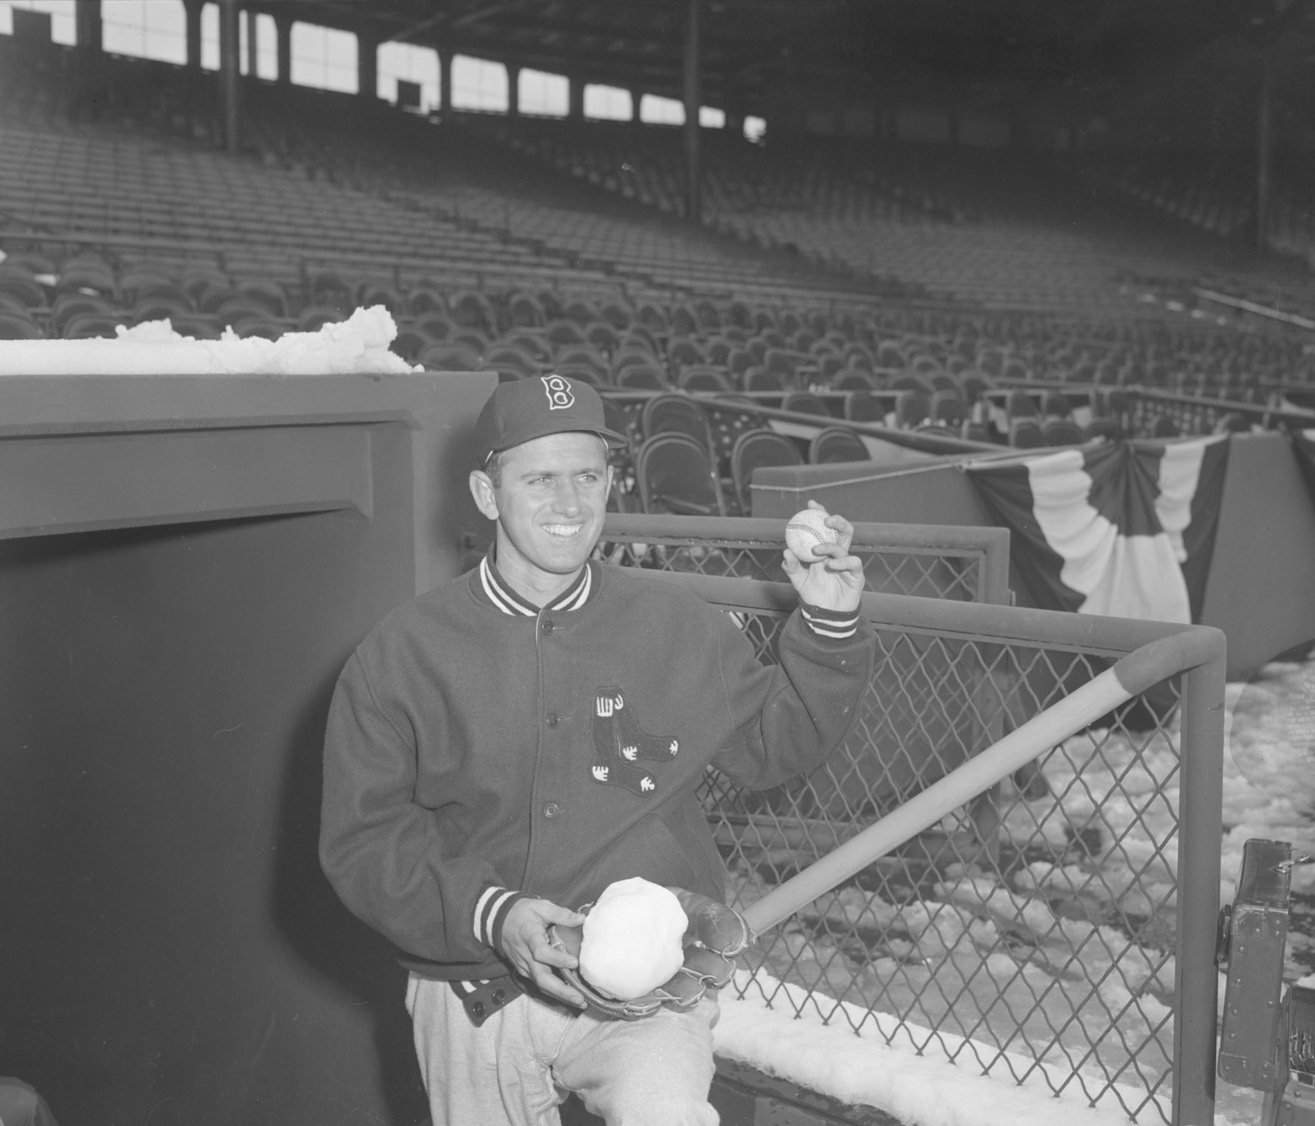 9d6314d85 You see Mel Parnell was a rookie in 1948 and he was not a bad rookie at  all, going 15-8 with a 3.14 ERA and at a time when Fenway Park was ...